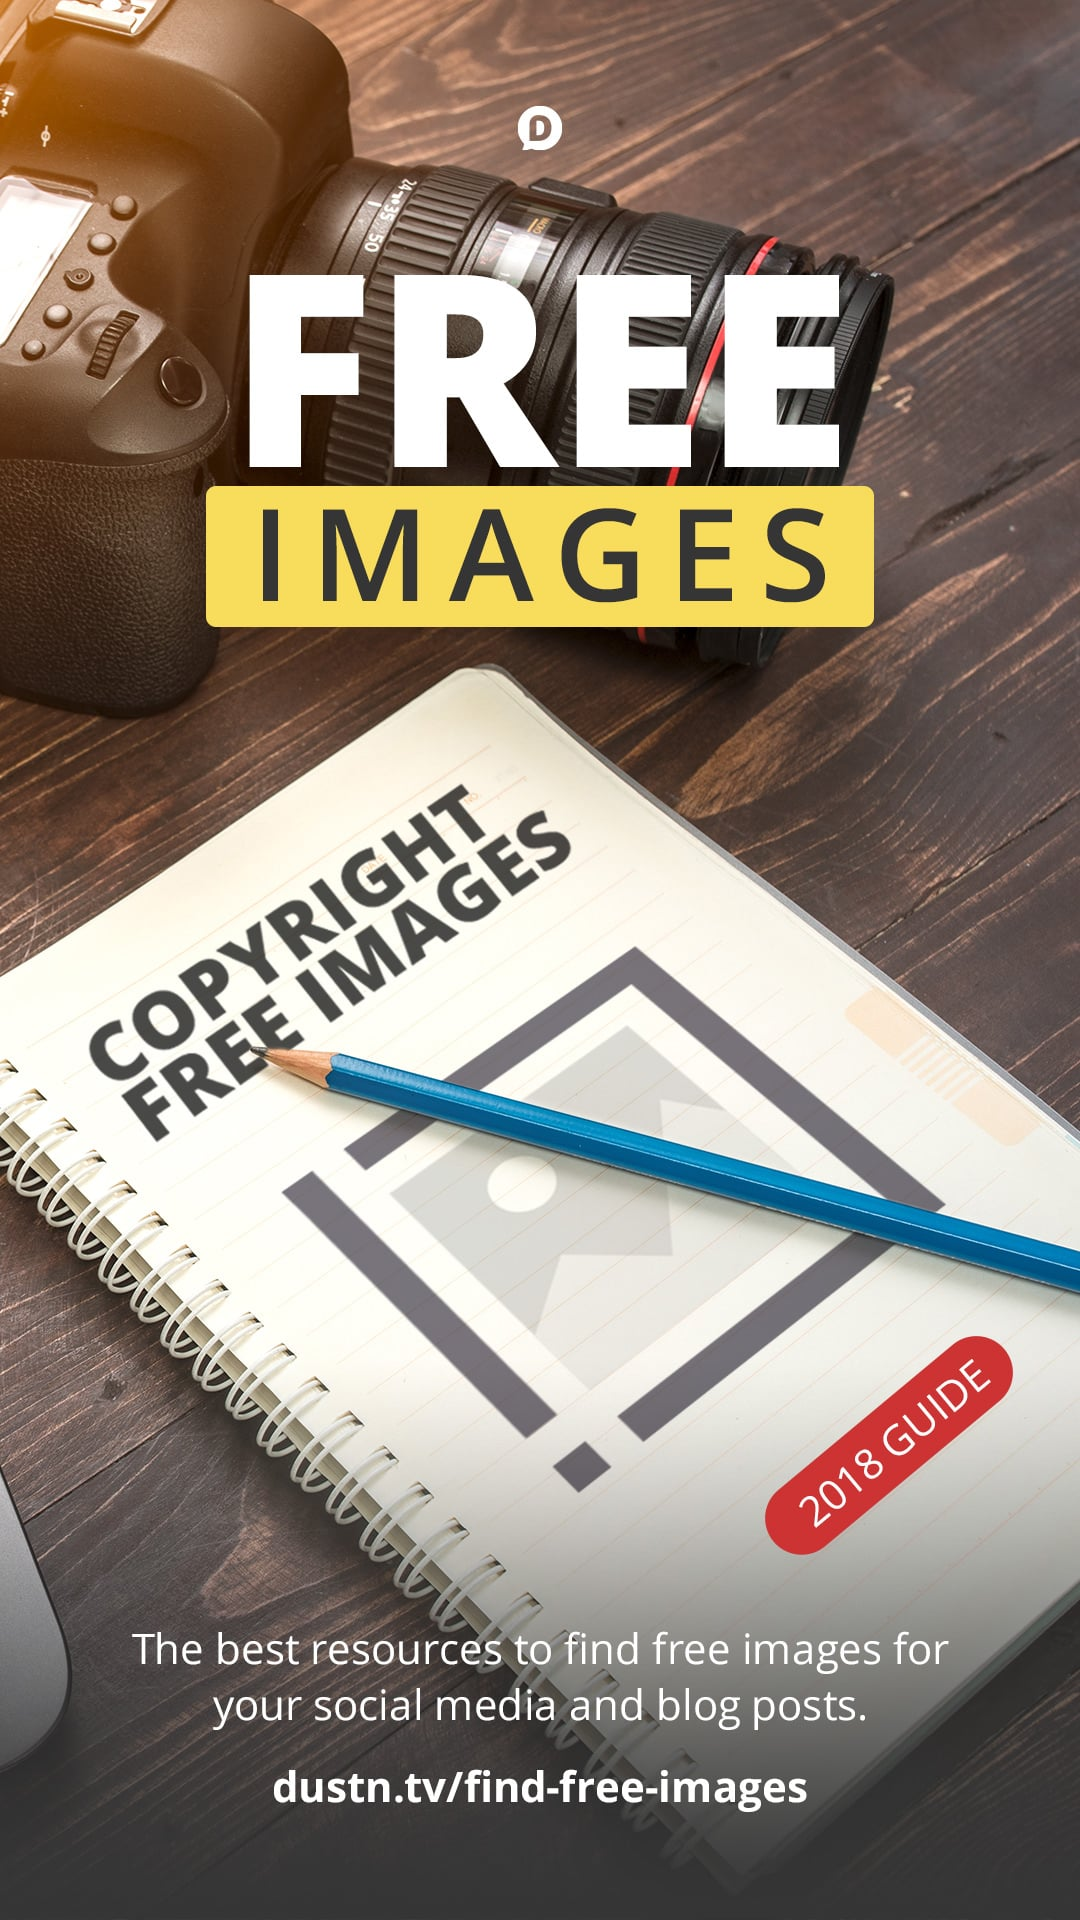 My go-to list of the best resources to find copyright free images to use in your blog posts, social media updates and websites! #blogging #socialmedia #contentmarketing #freeimages